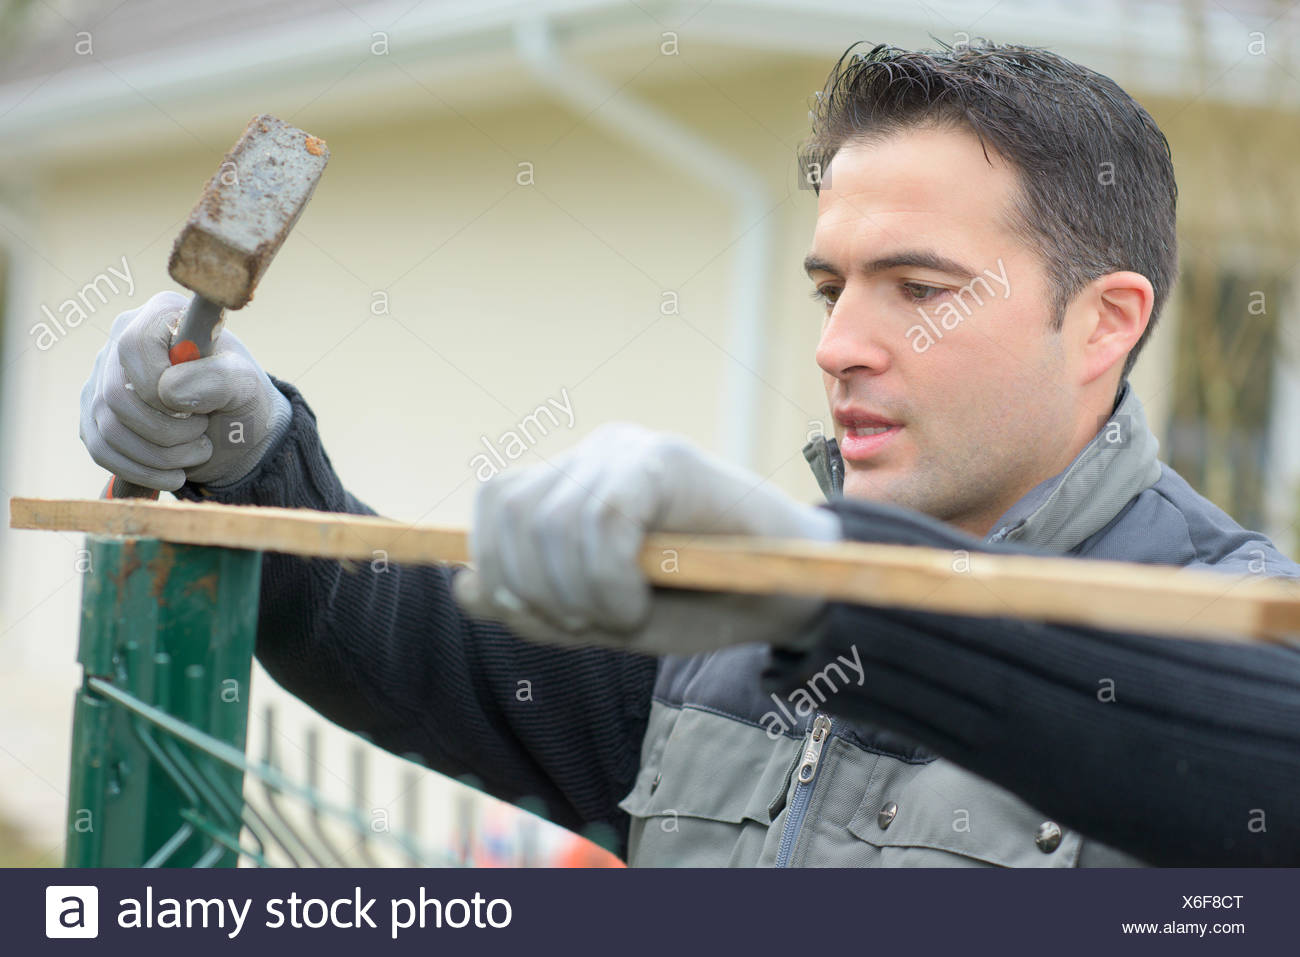 Hammering a fence into place - Stock Image